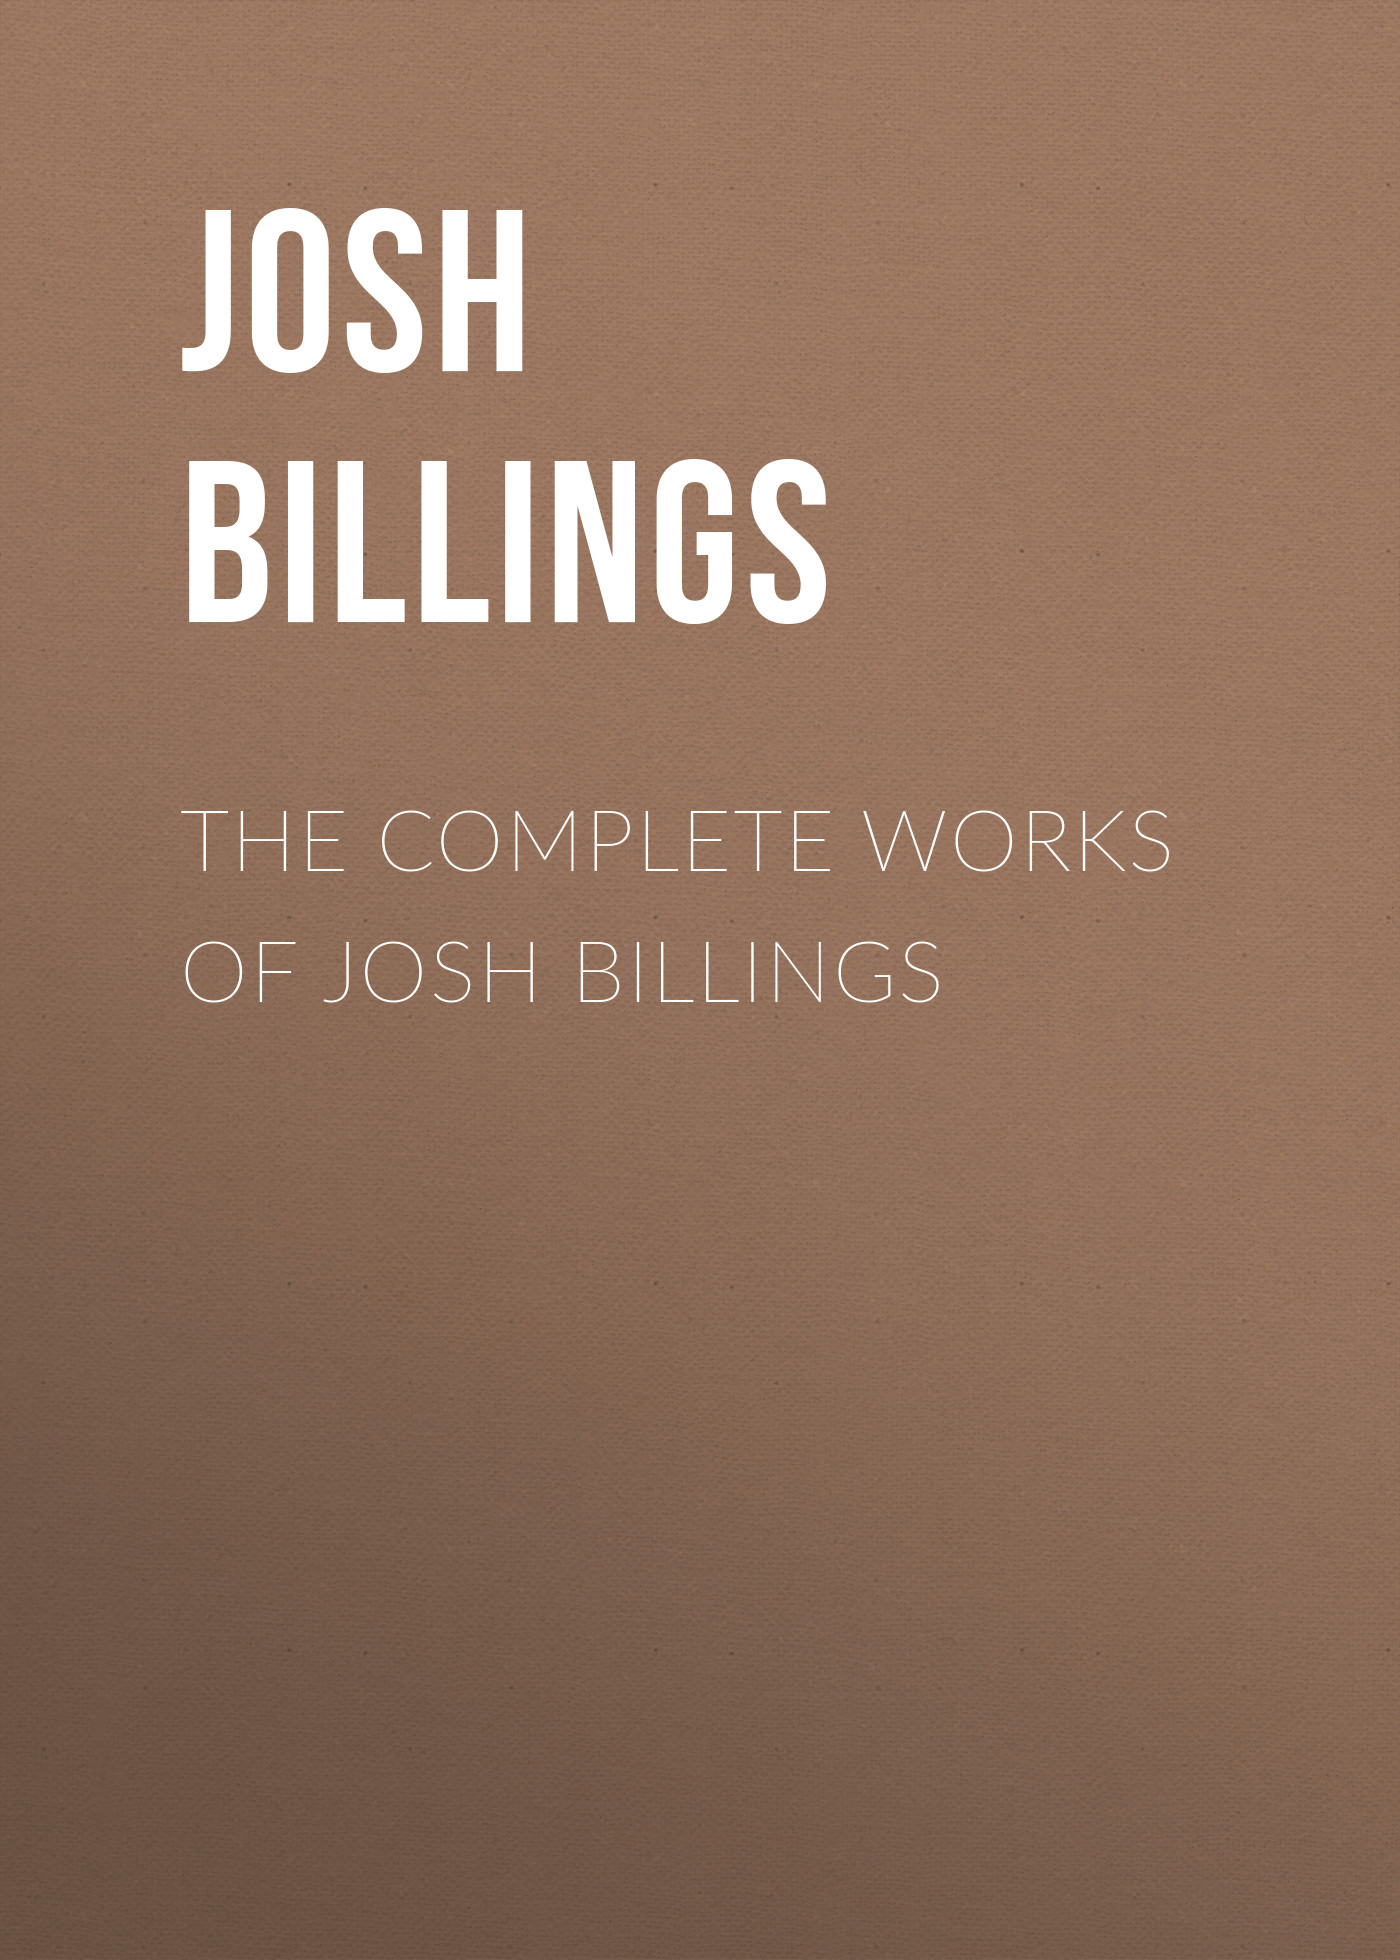 Billings Josh The Complete Works of Josh Billings melanie billings yun beyond dealmaking five steps to negotiating profitable relationships